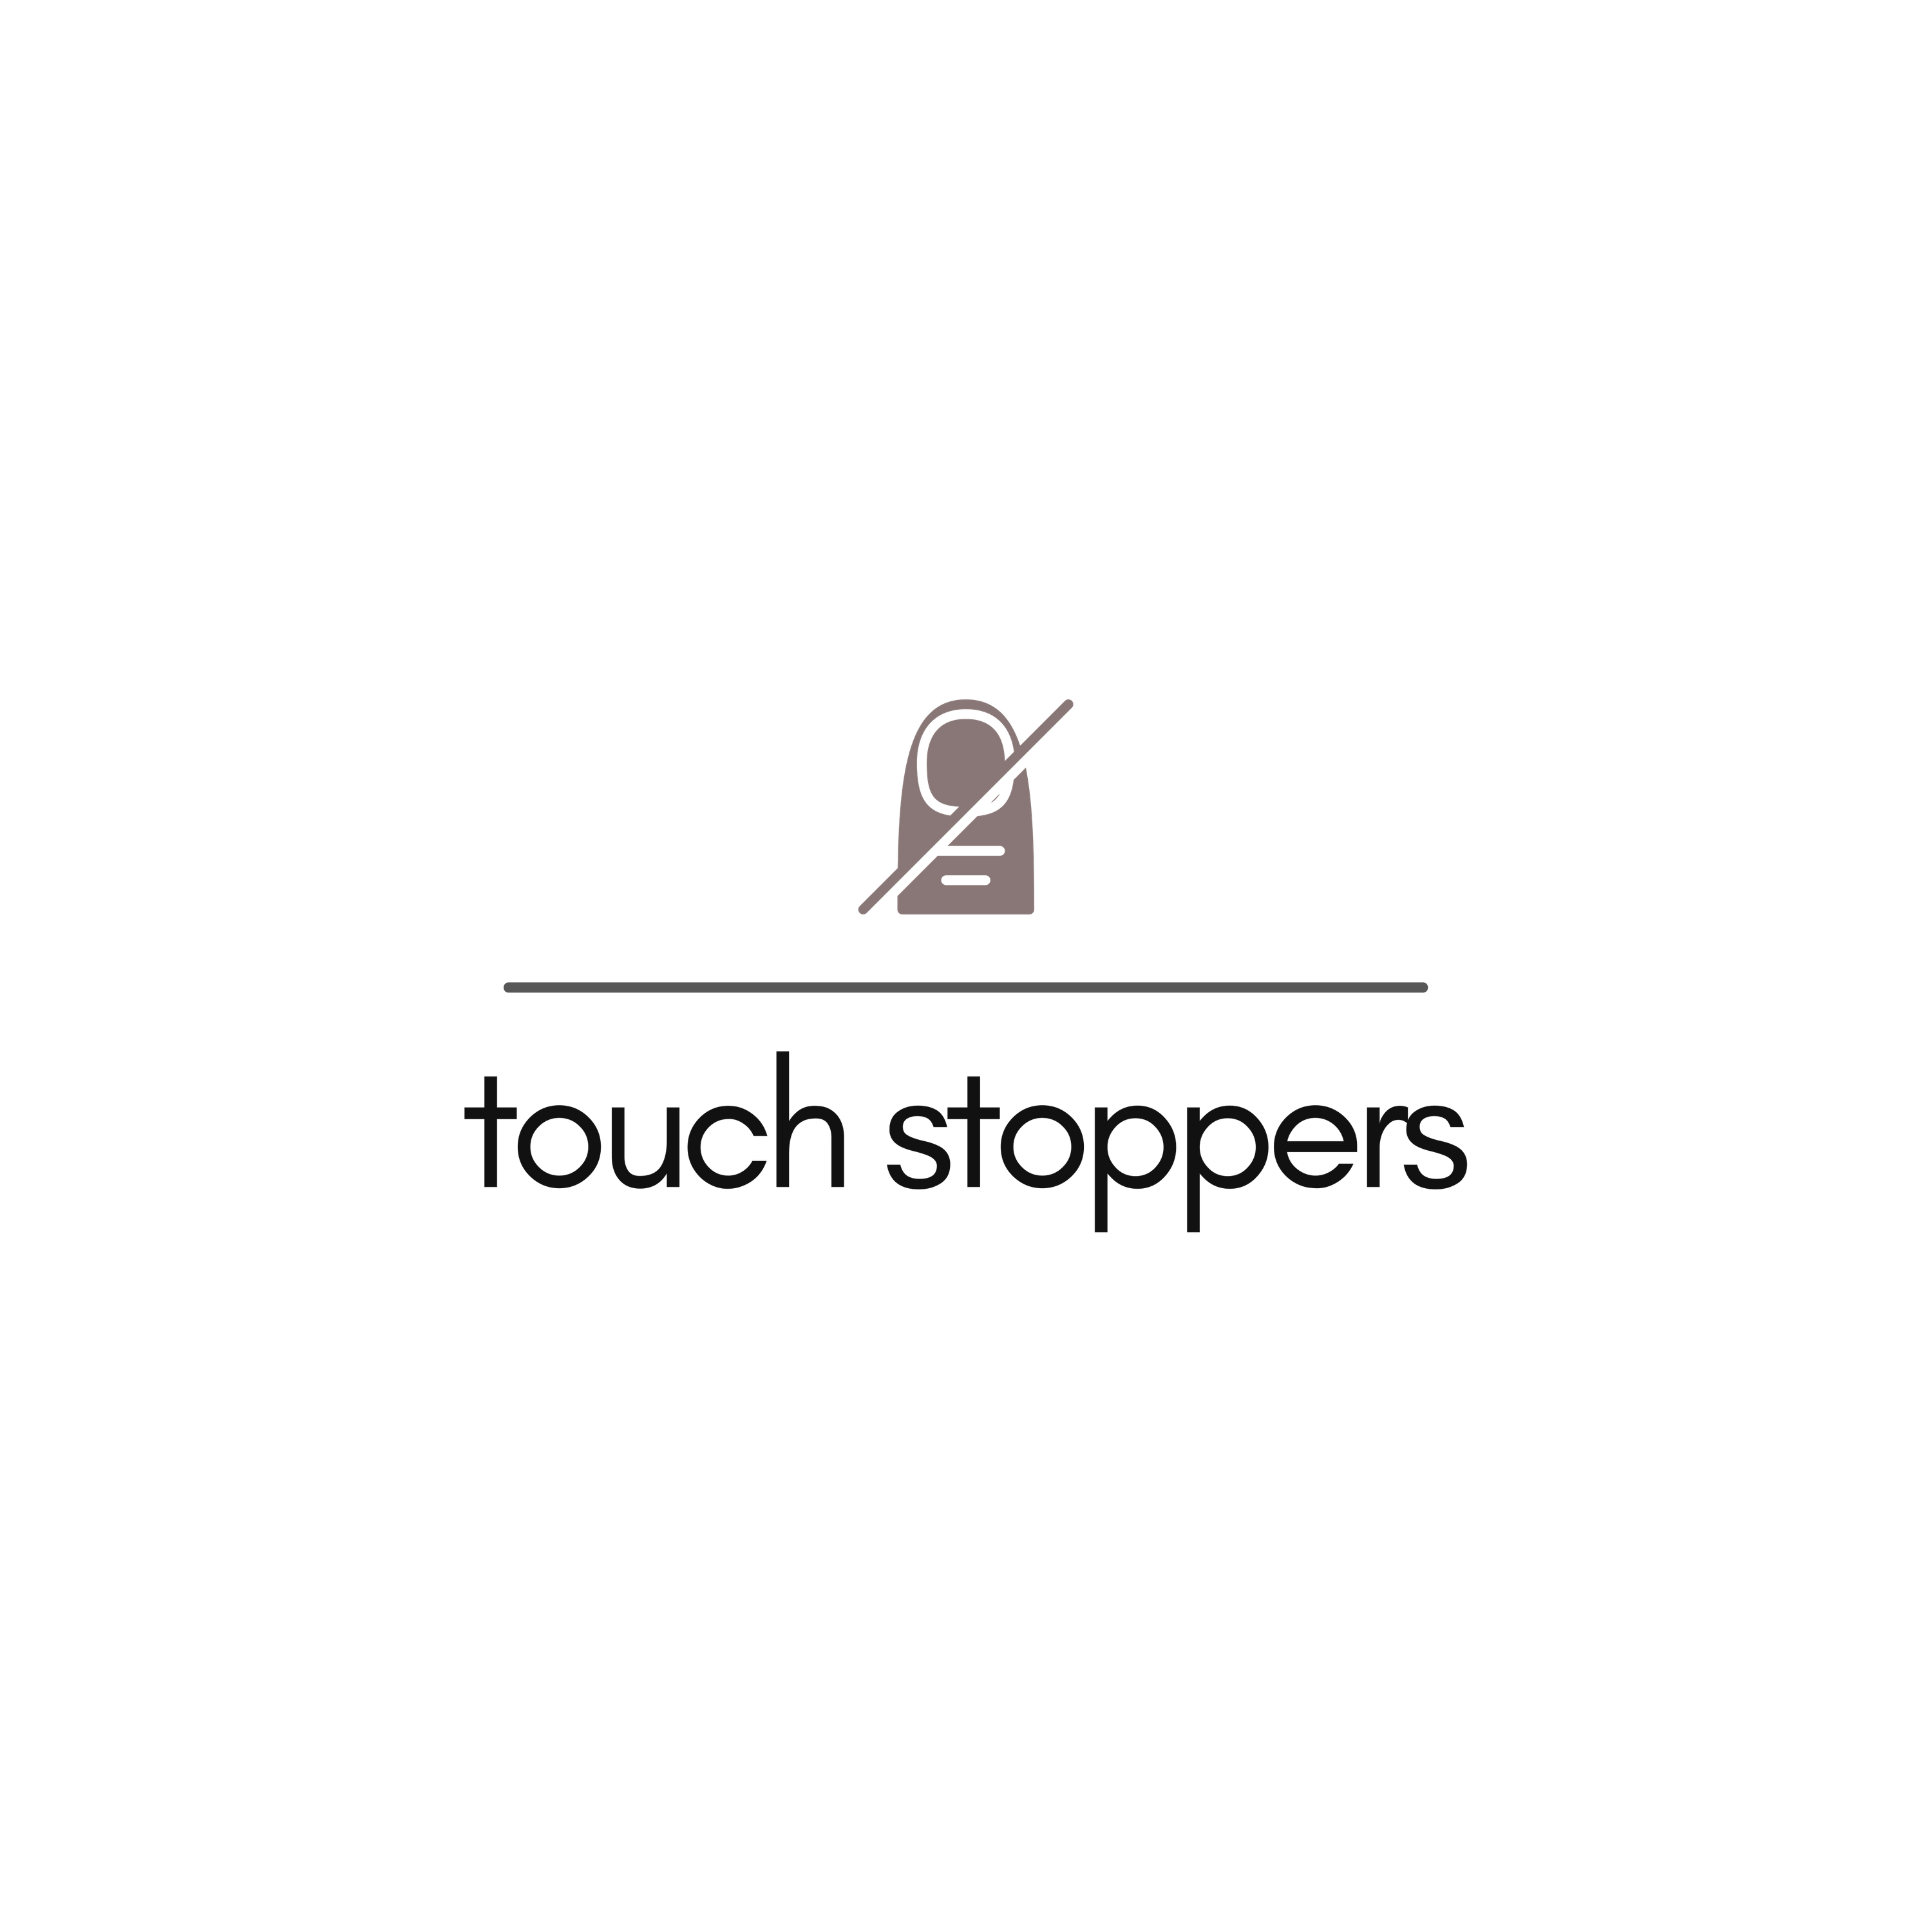 touch stoppers